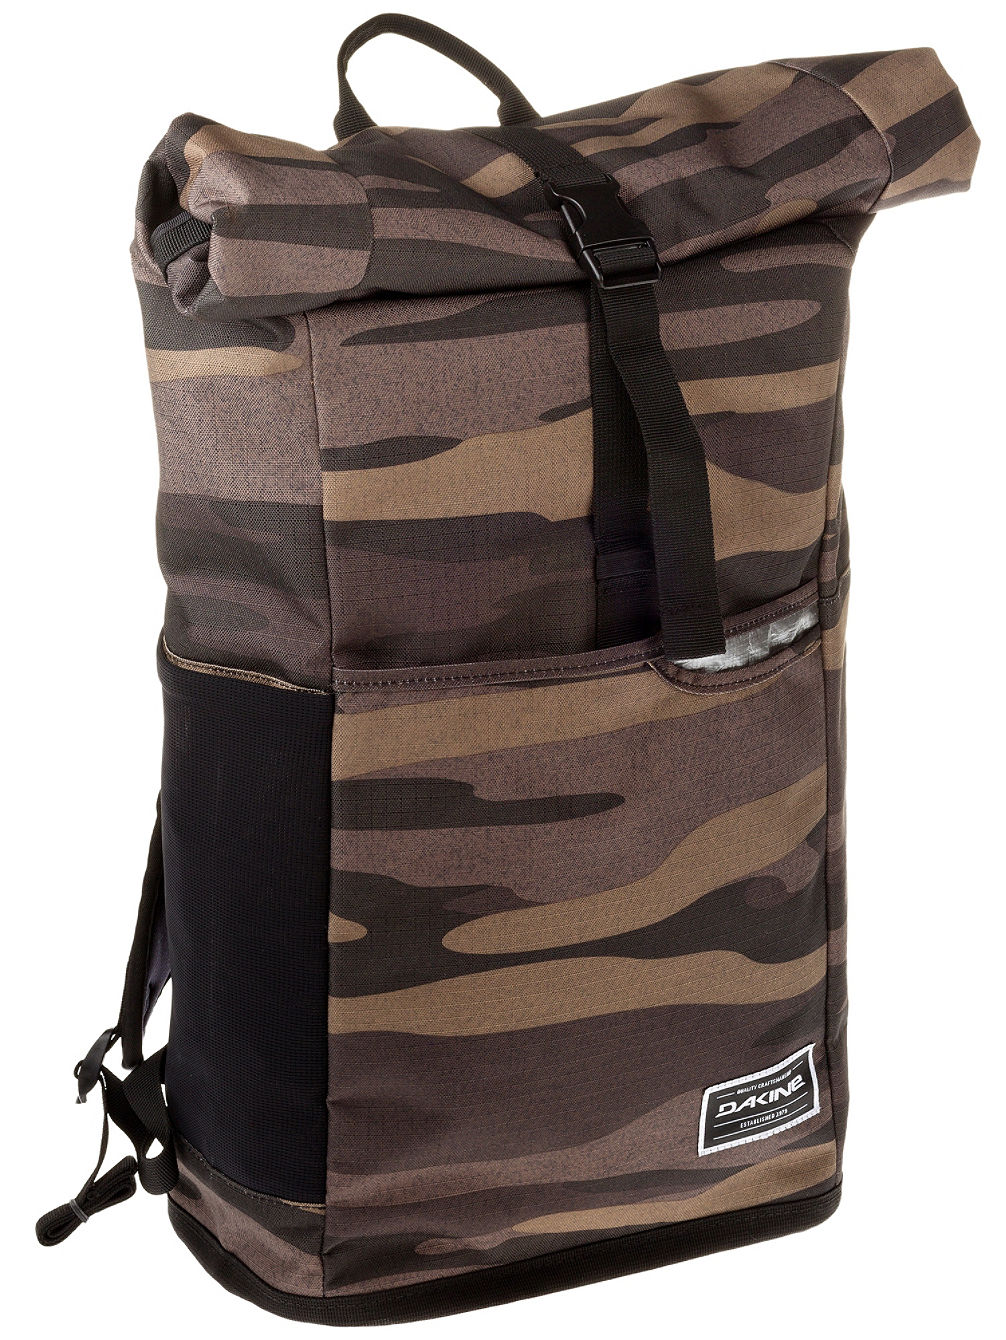 6bc99df447d1f Buy Dakine Section Roll Top Wet Dry 28L Backpack online at Blue Tomato